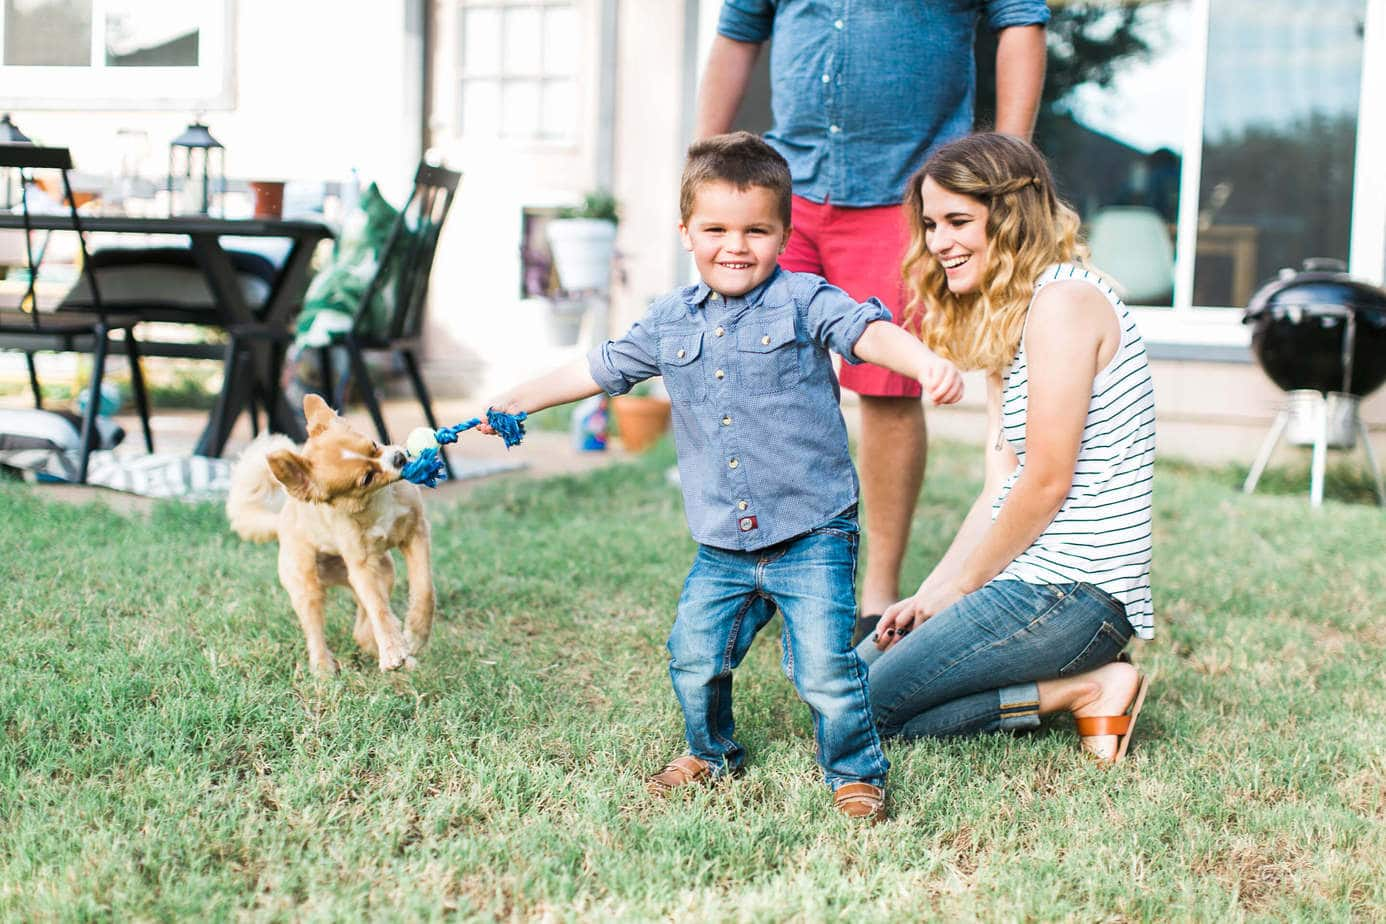 How to plan for and take great family photos in your home